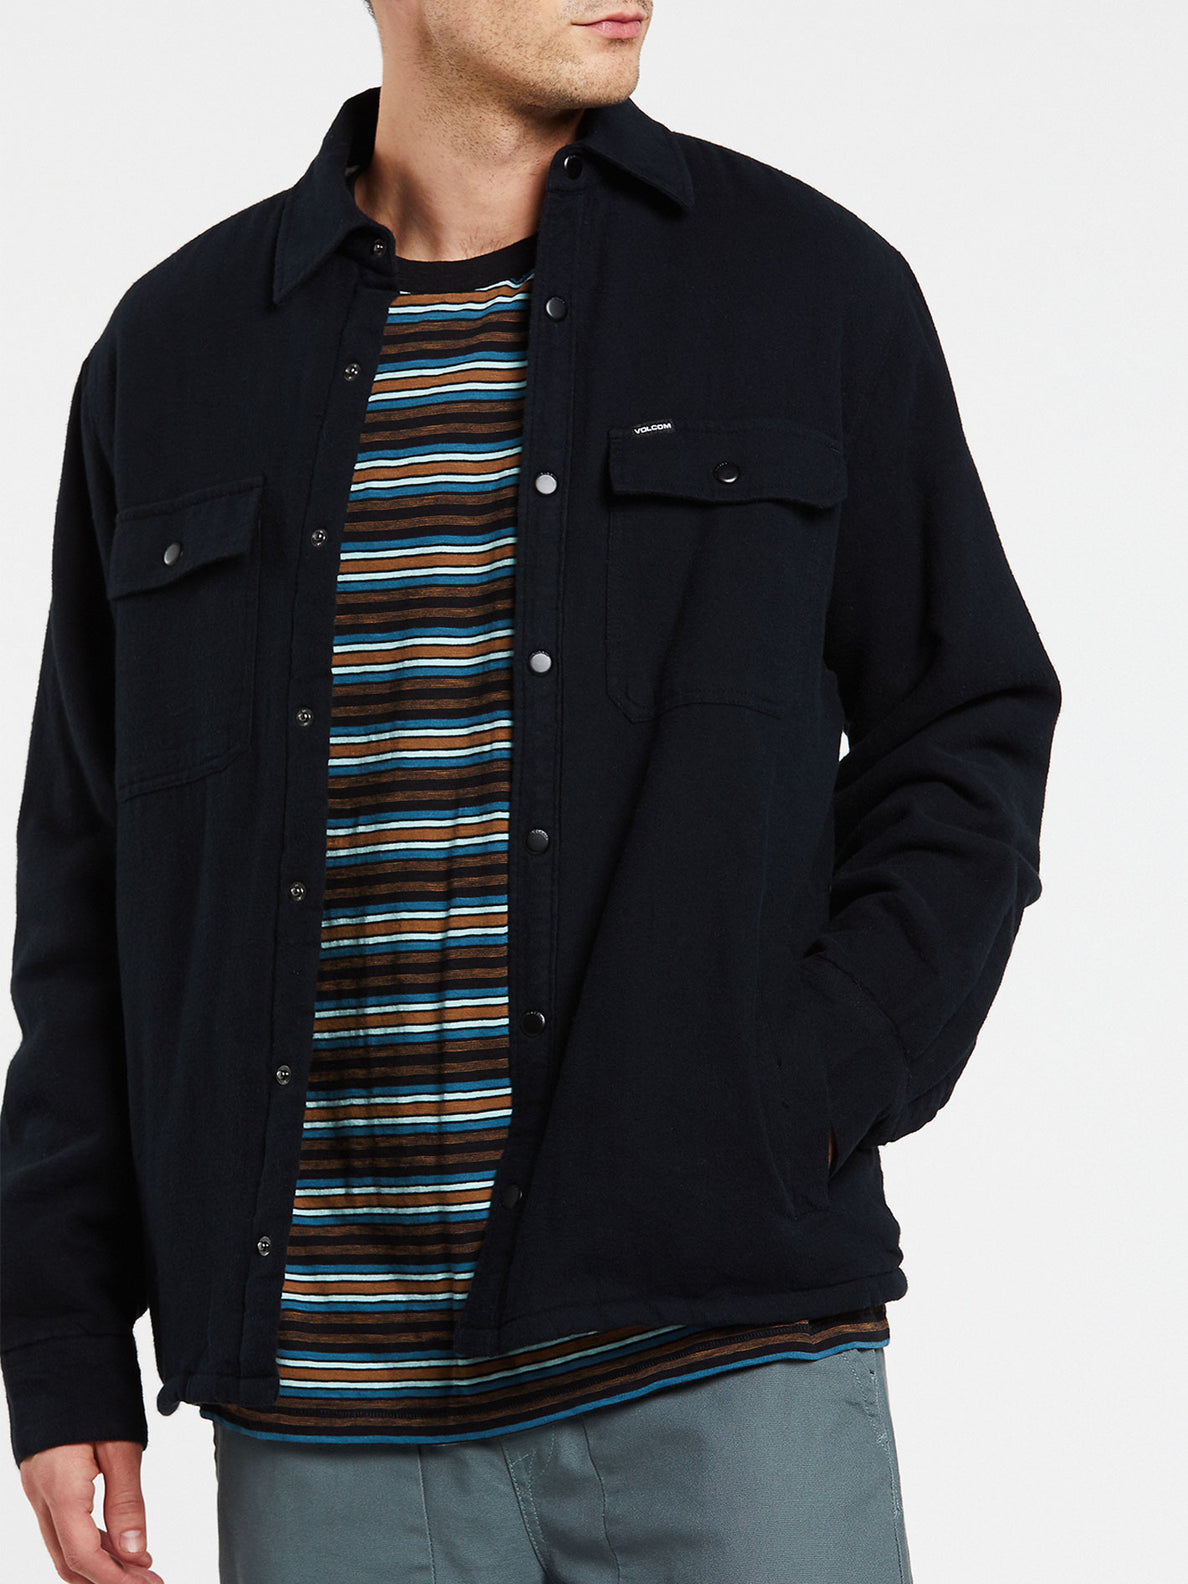 Larkin Jacket - Black (A1632002_BLK) [19]